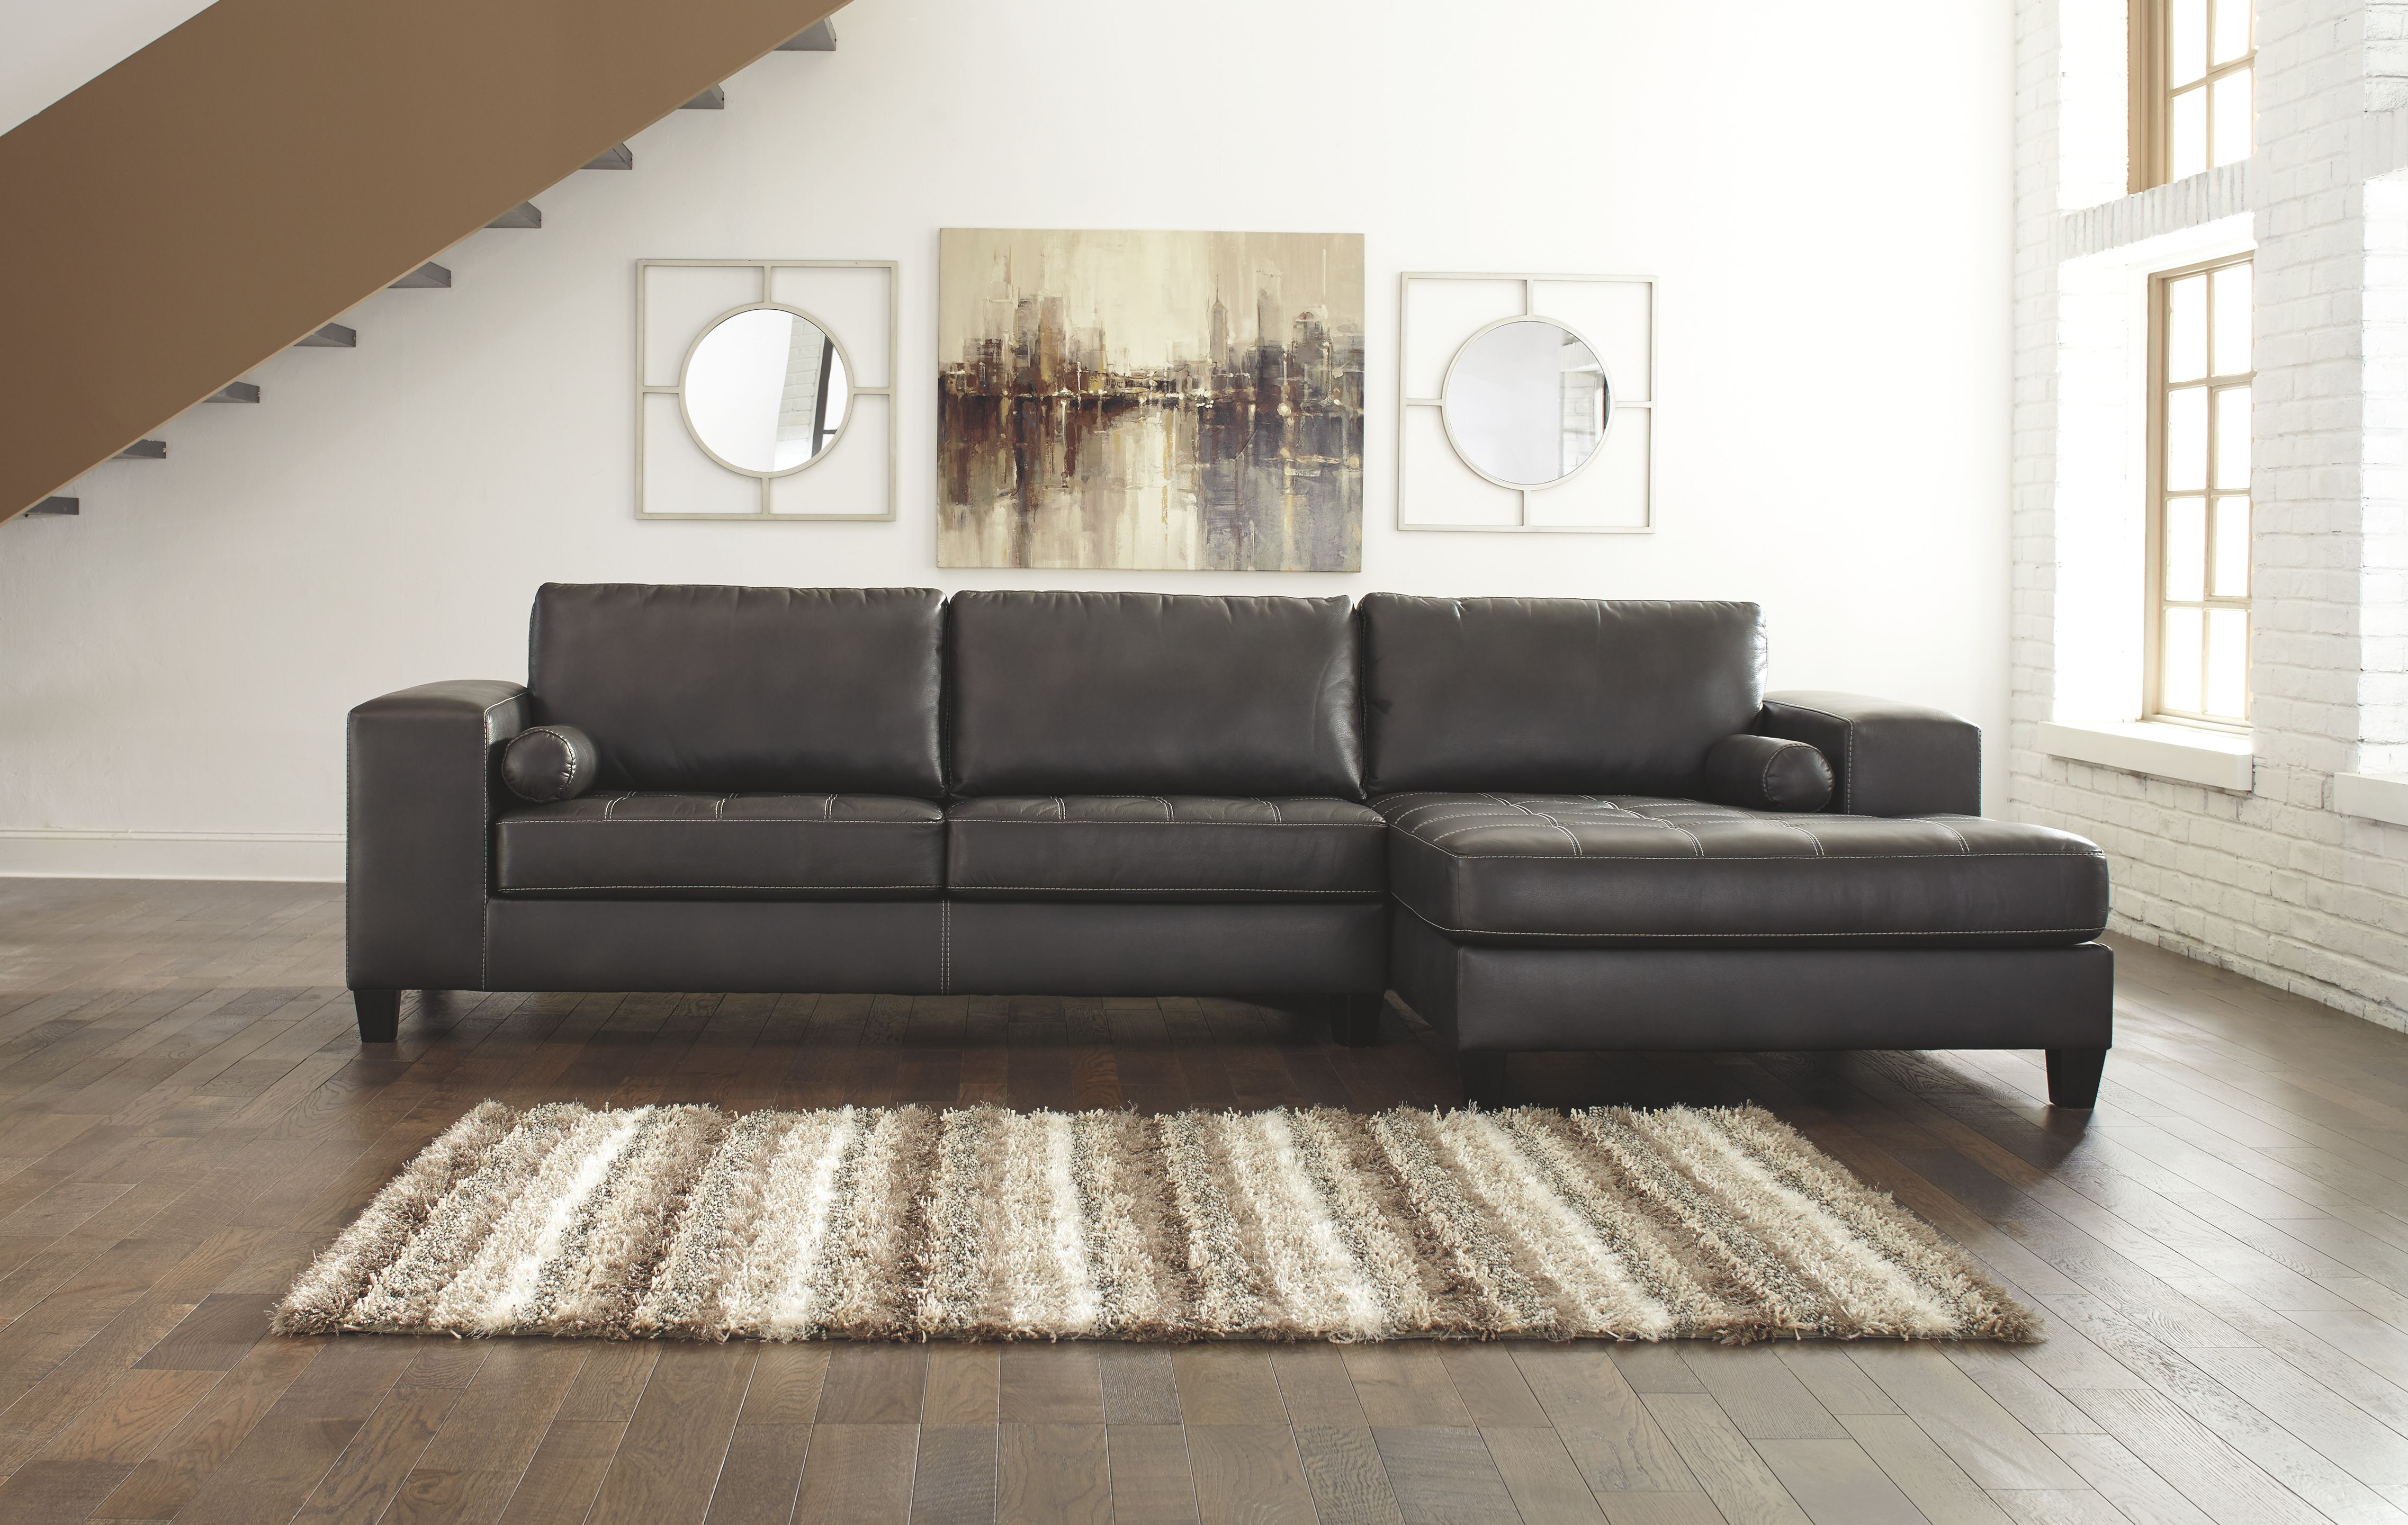 Signature Design By Ashley Living Room LAF Sofa 8770166 At China Towne  Furniture